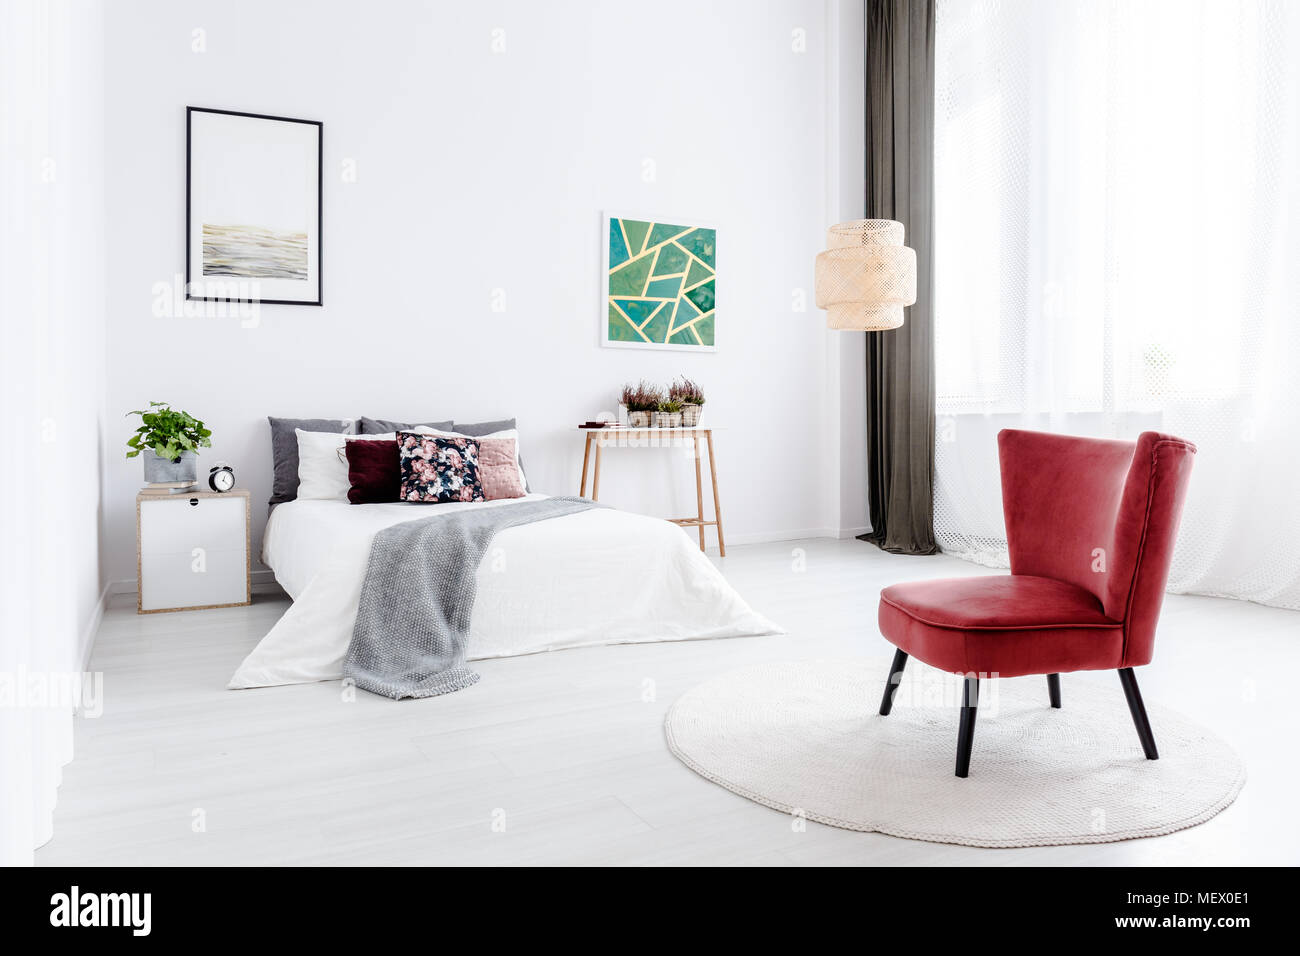 Red armchair on round rug in white bedroom interior with green ...